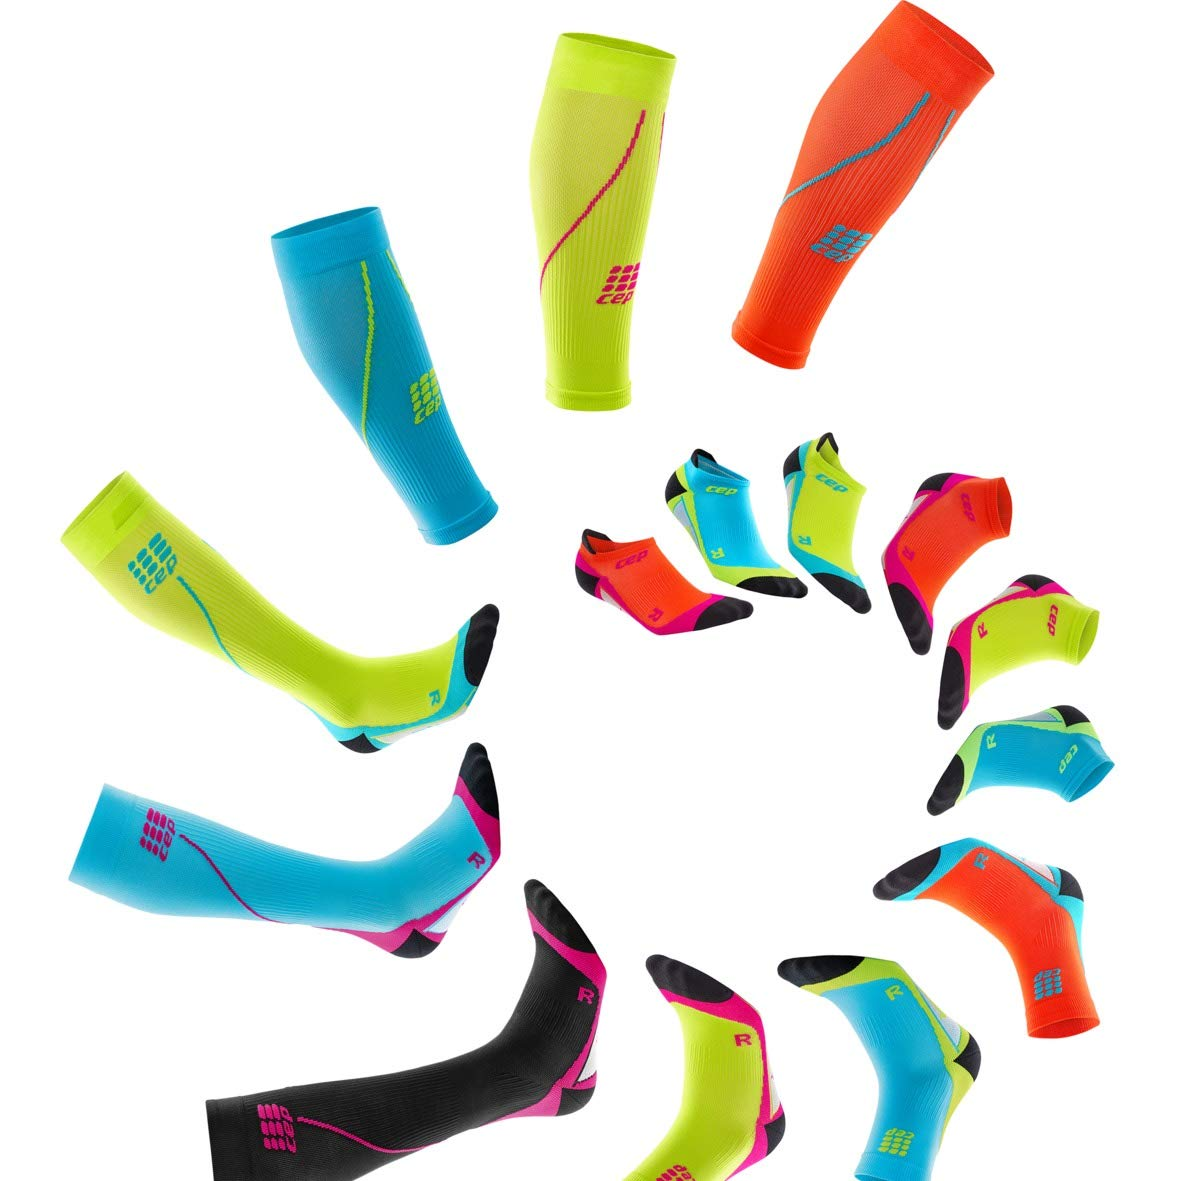 Womens Calf Compression Sleeves - CEP Running 2.0 (Black) II by CEP (Image #4)